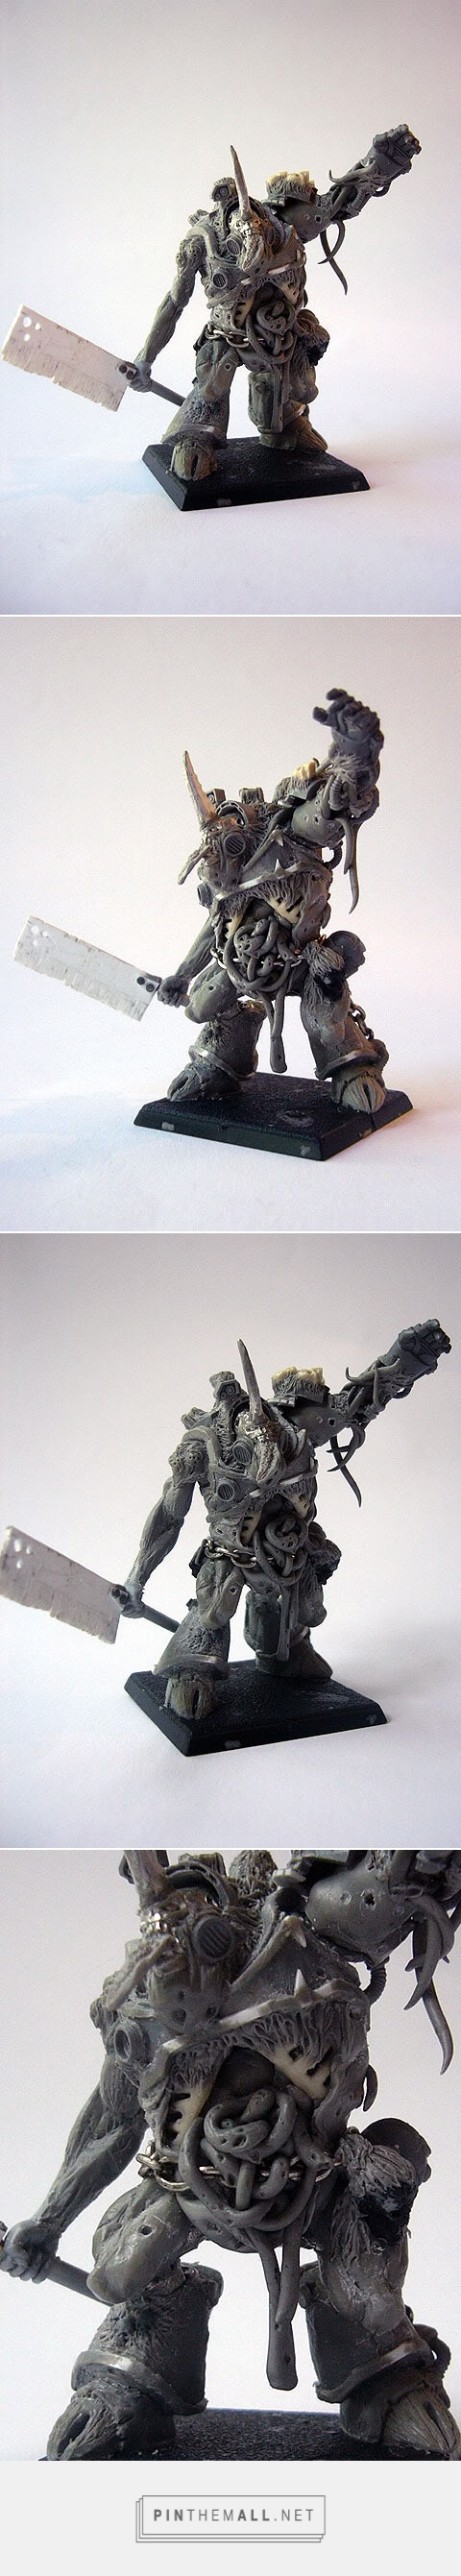 ::really well executed ideas::    Scratchbuilt Nurgle Daemon Prince and Plague Champion - + WORKS IN PROGRESS + - The Bolter and Chainsword - created via https://pinthemall.net